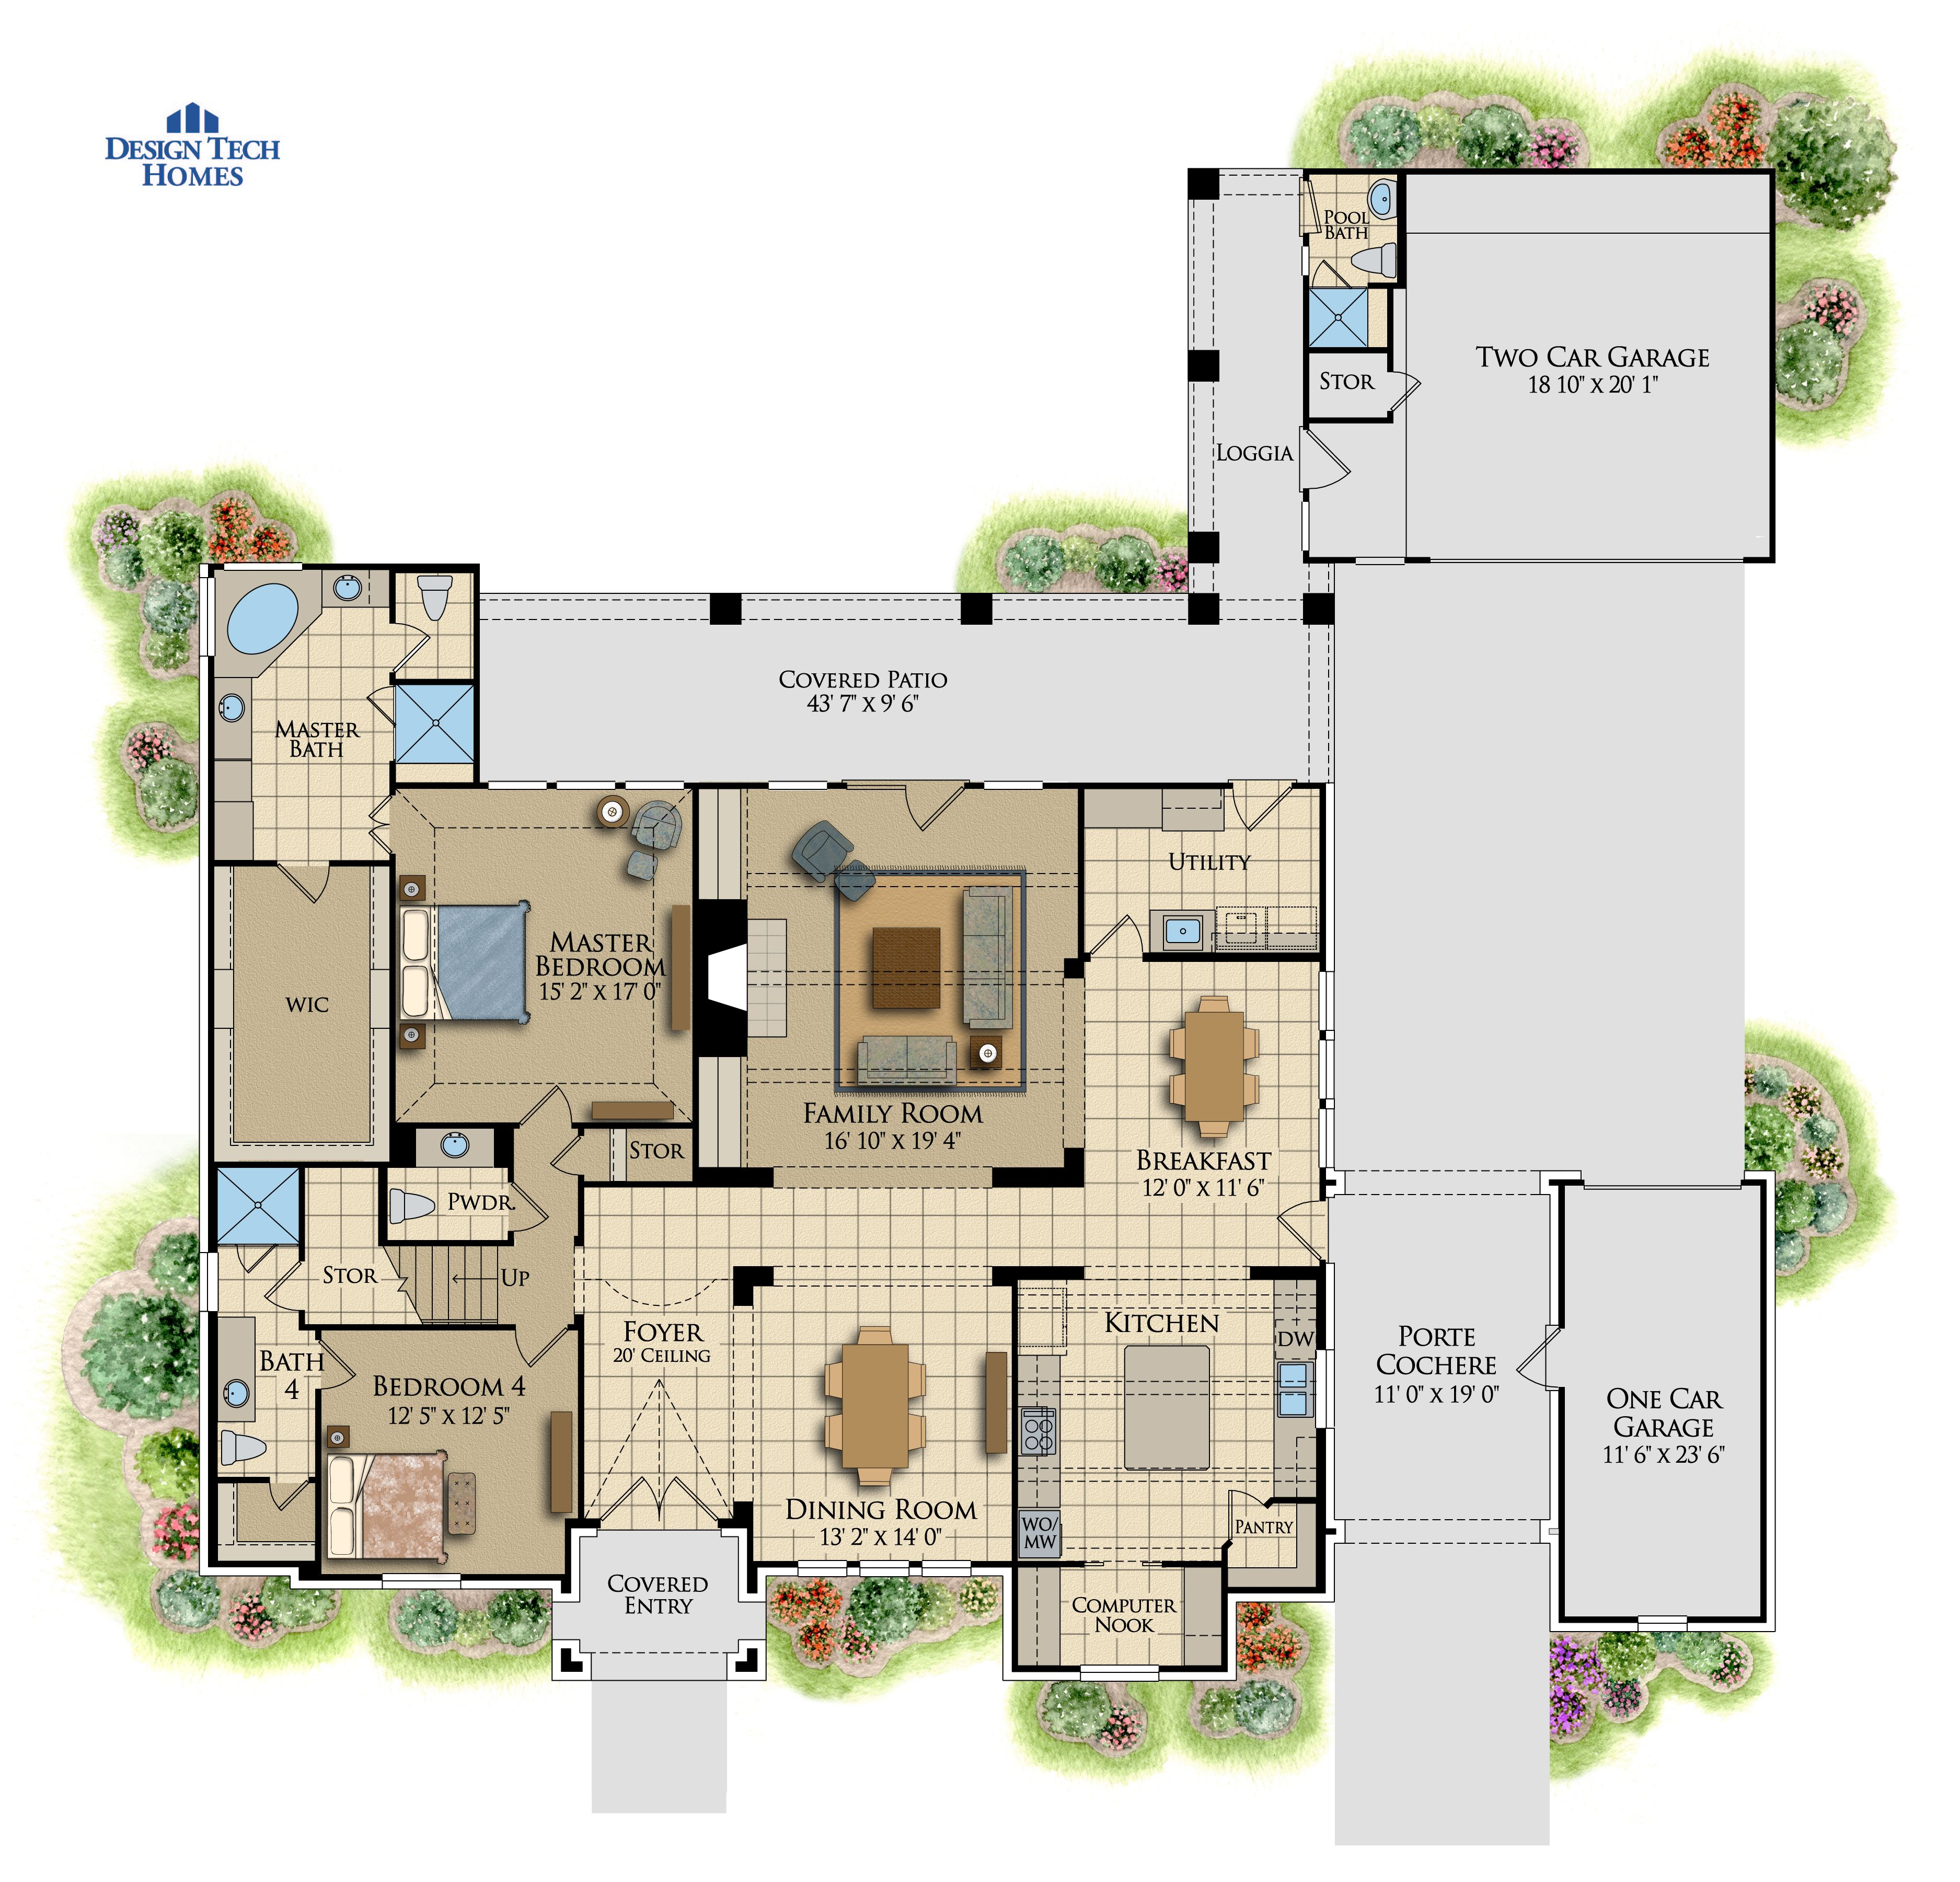 3,929 Sq Ft House Plan - 4 Bed 4 Bath, 2 Story - The Calais | Design ...